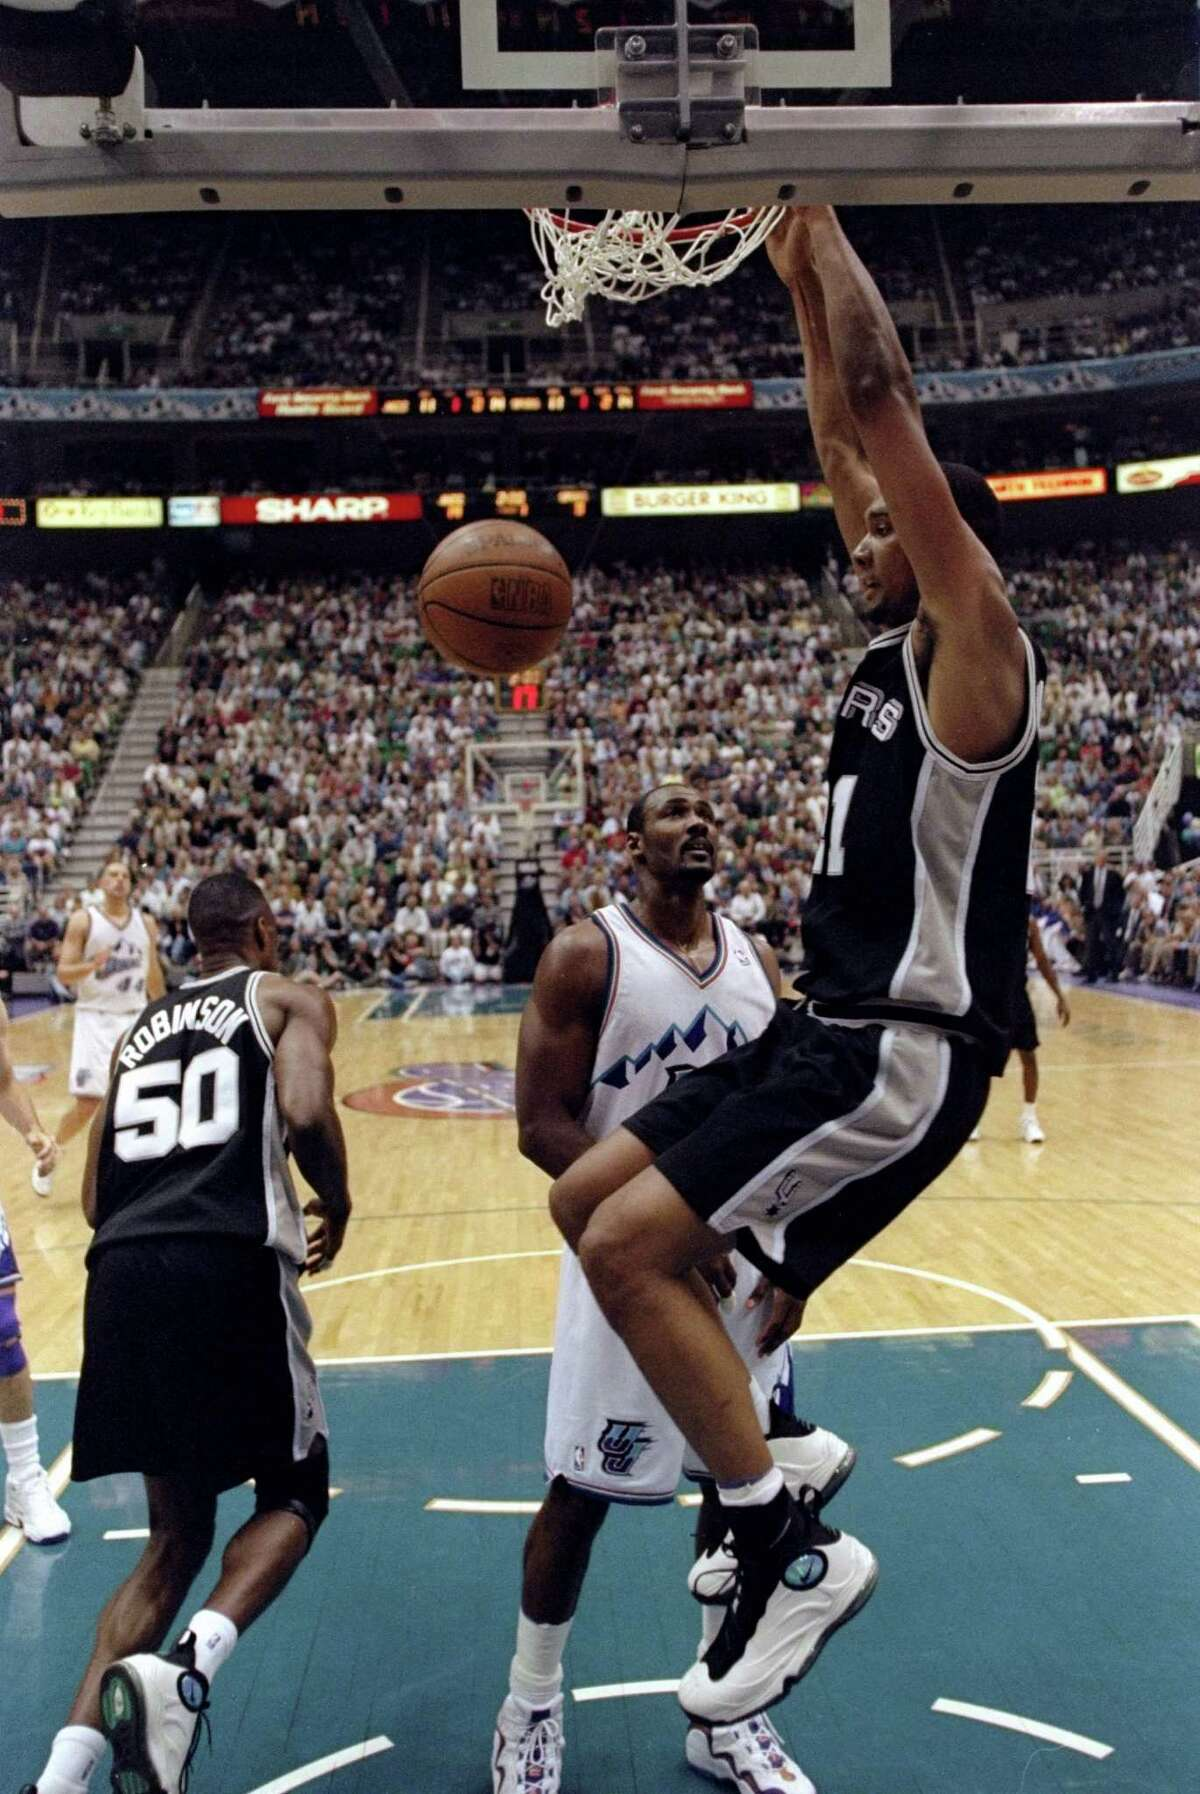 In May 1998, during game 5 of the Western Conference Semifinals, Tim Duncan and David Robinson wore the Nike Total Air Foamposite Max.